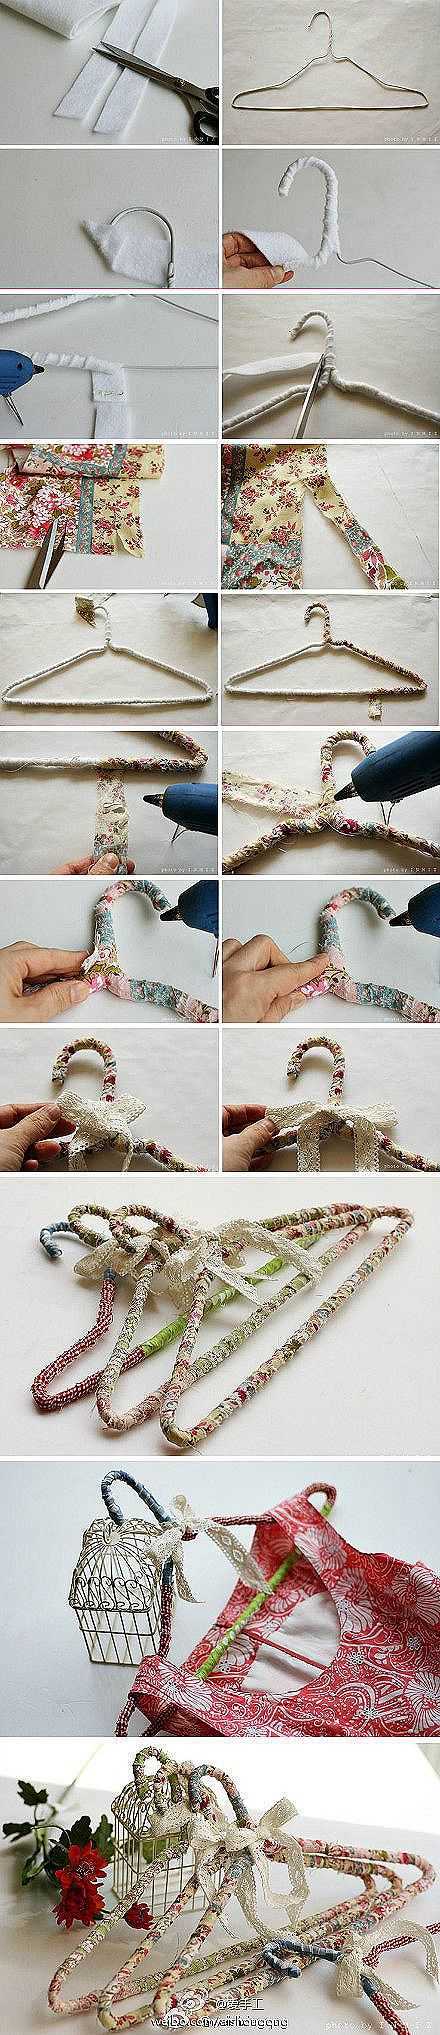 DIY: Shabby Hangers: Simple handmade fabric wrapped hanger (fabric strips cut…                                                                                                                                                                                 More